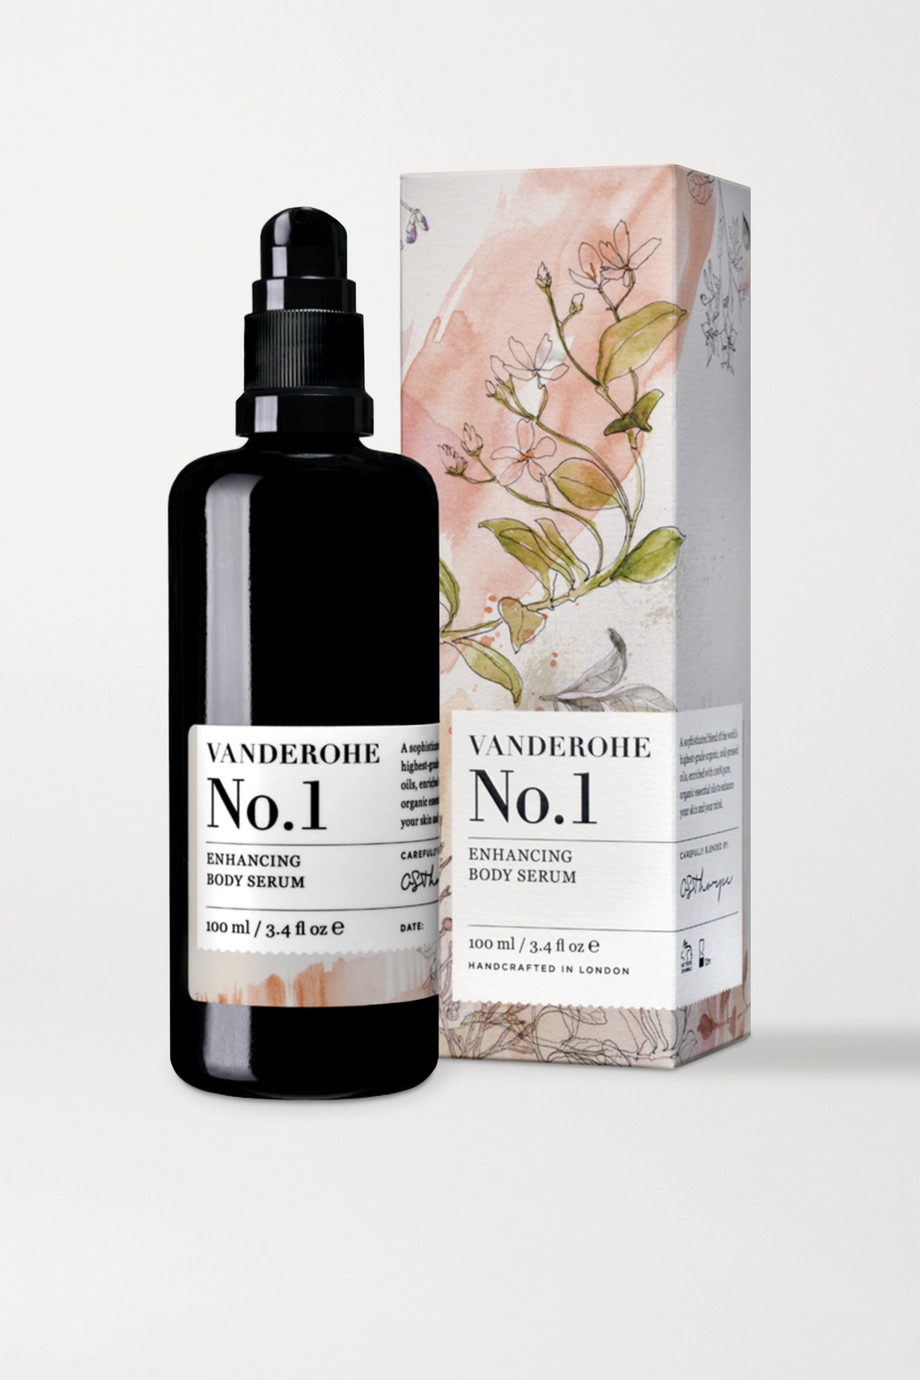 Vanderohe No.1 Enhancing Body Serum, 100ml